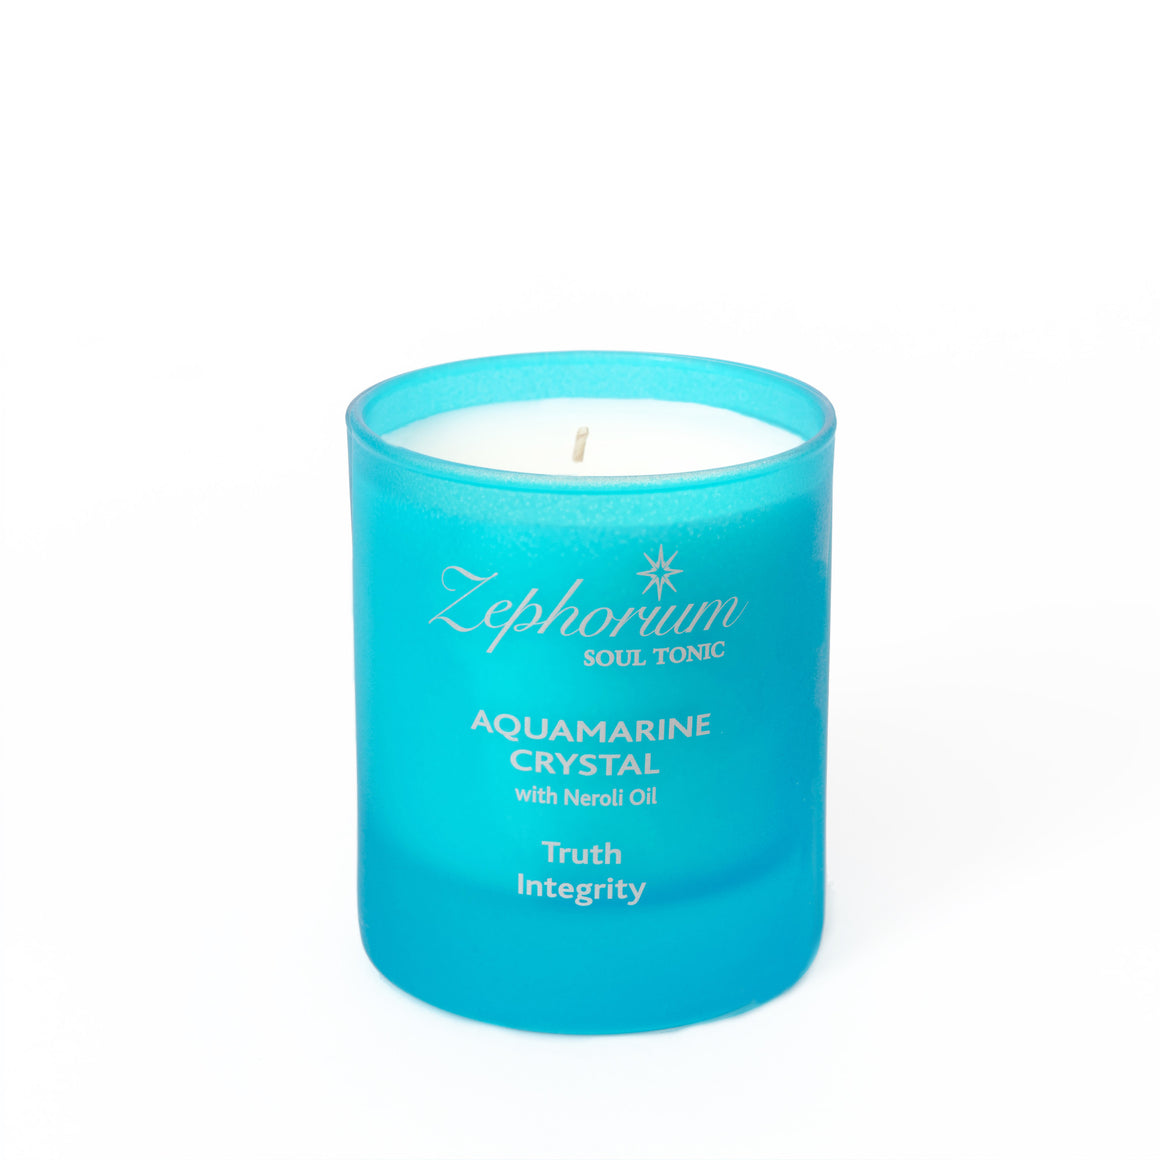 Truth & Integrity with Neroli Oil Affirmation Candle